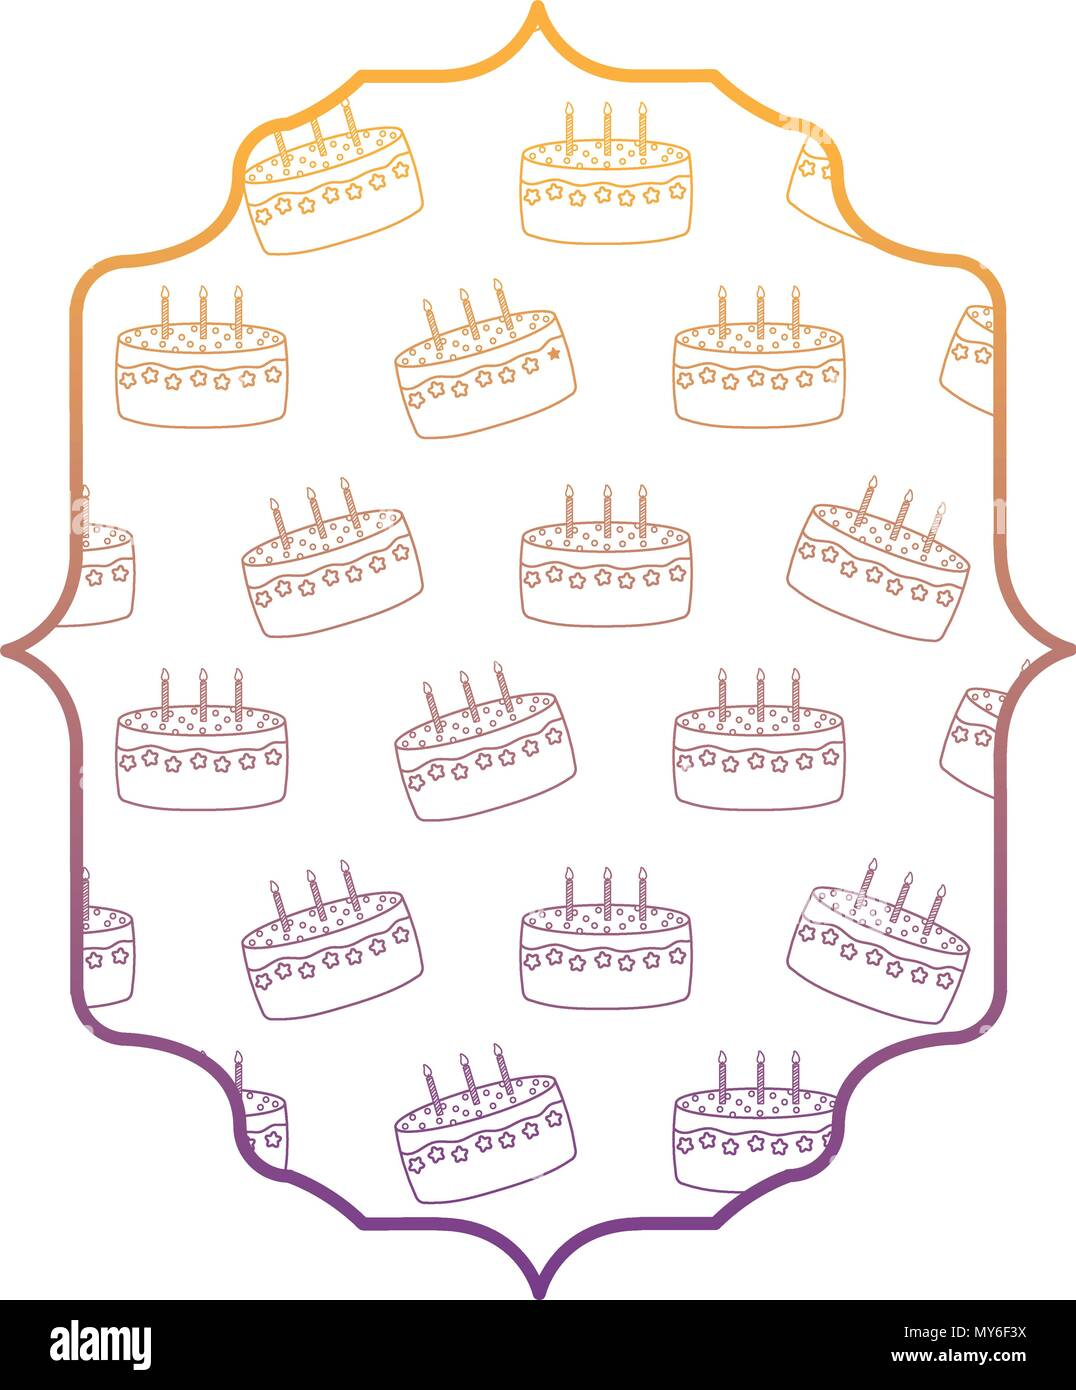 Arabic Frame With Birthday Cake Pattern Over White Background Vector Illustration